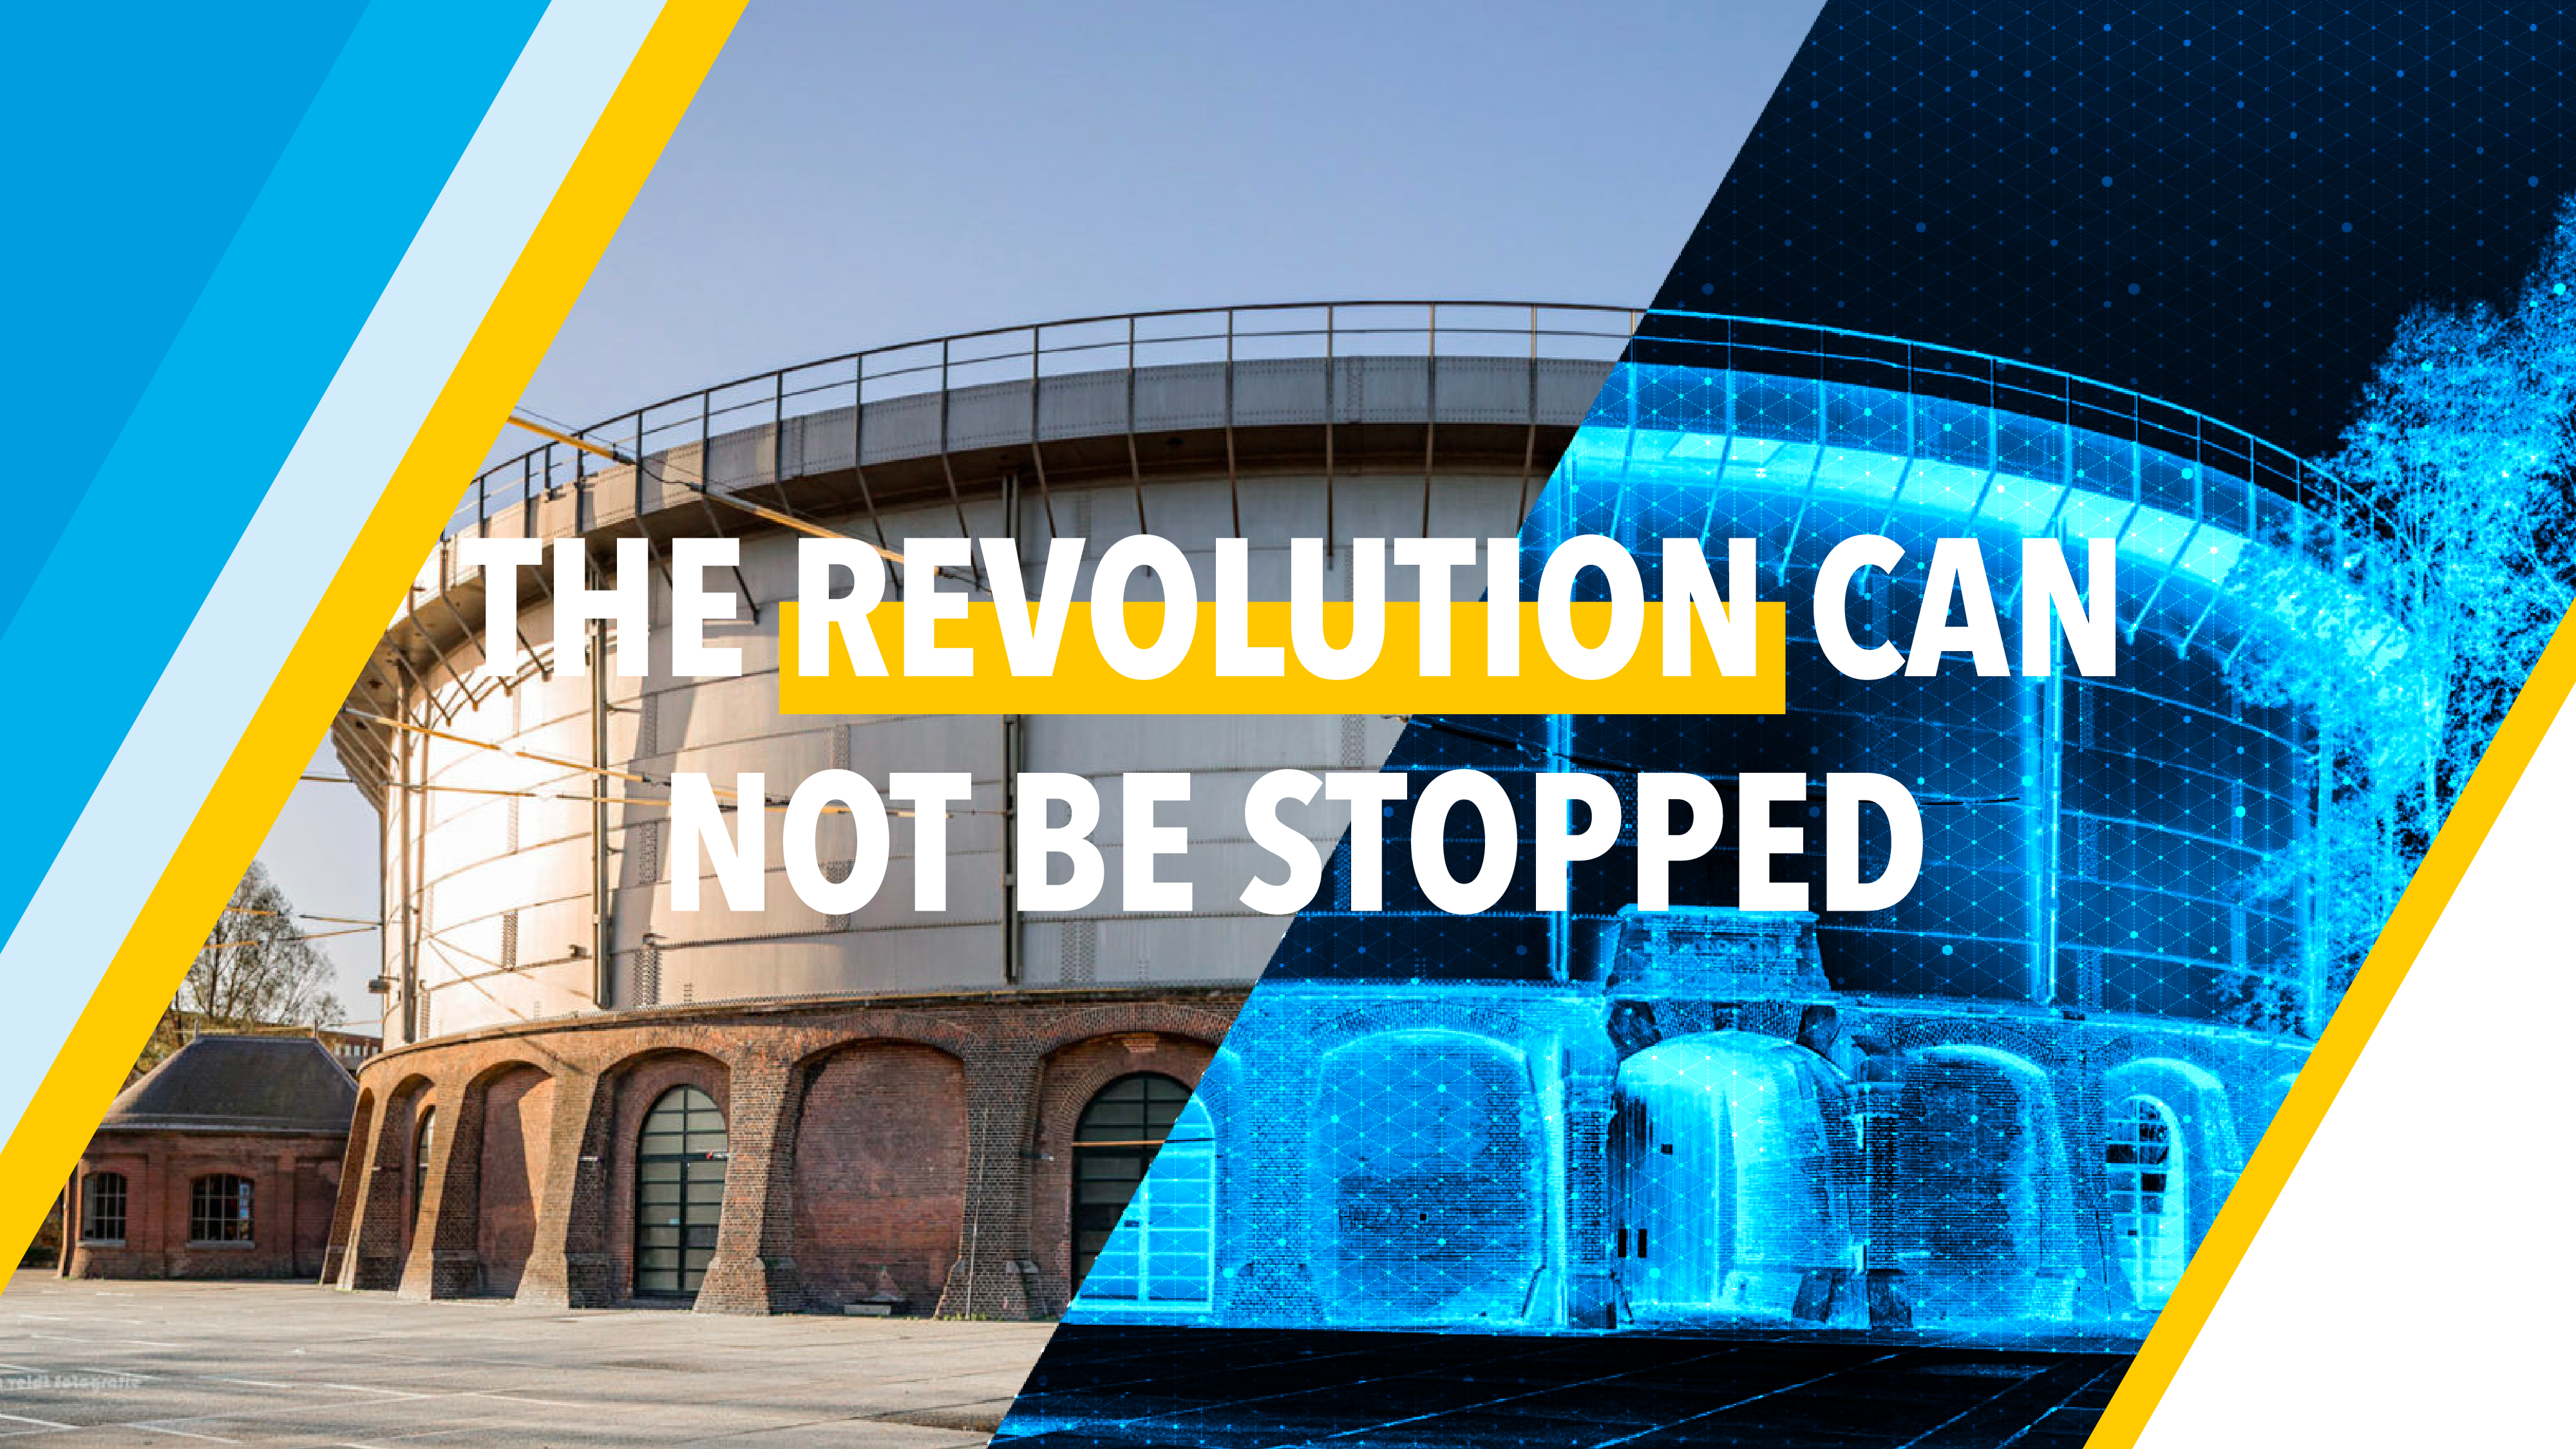 the REVOLUTION can not be stopped - REVOLUTION Digital 2020